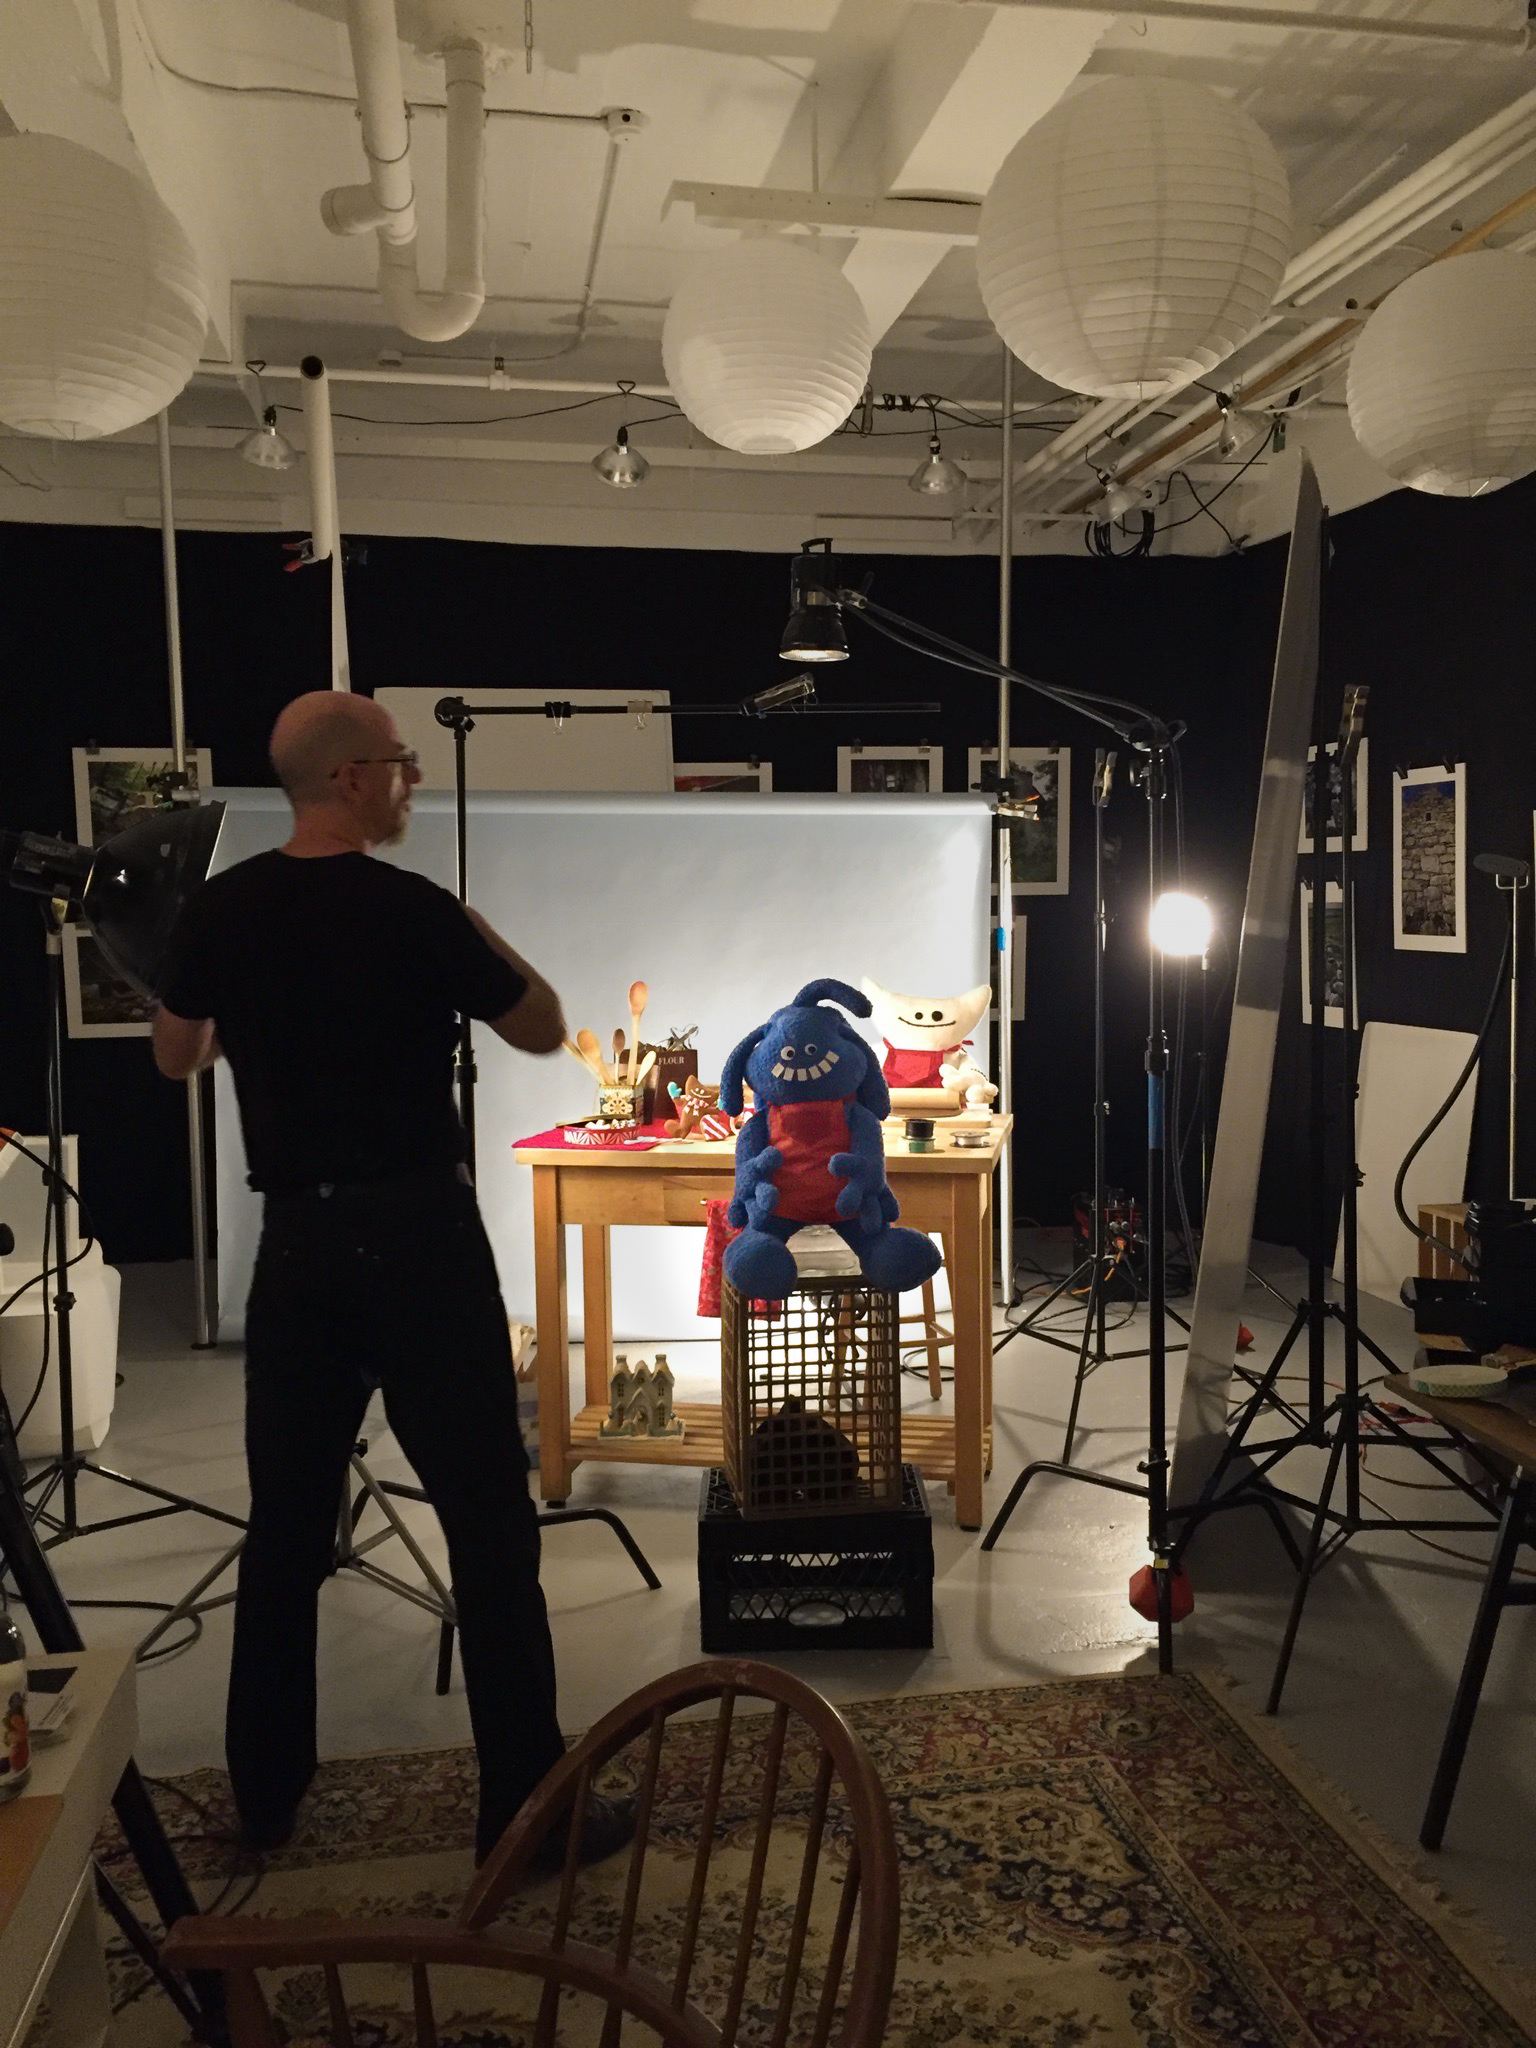 First lighting and set-up tests, with our fantastic photographer Andrew O'Beirne